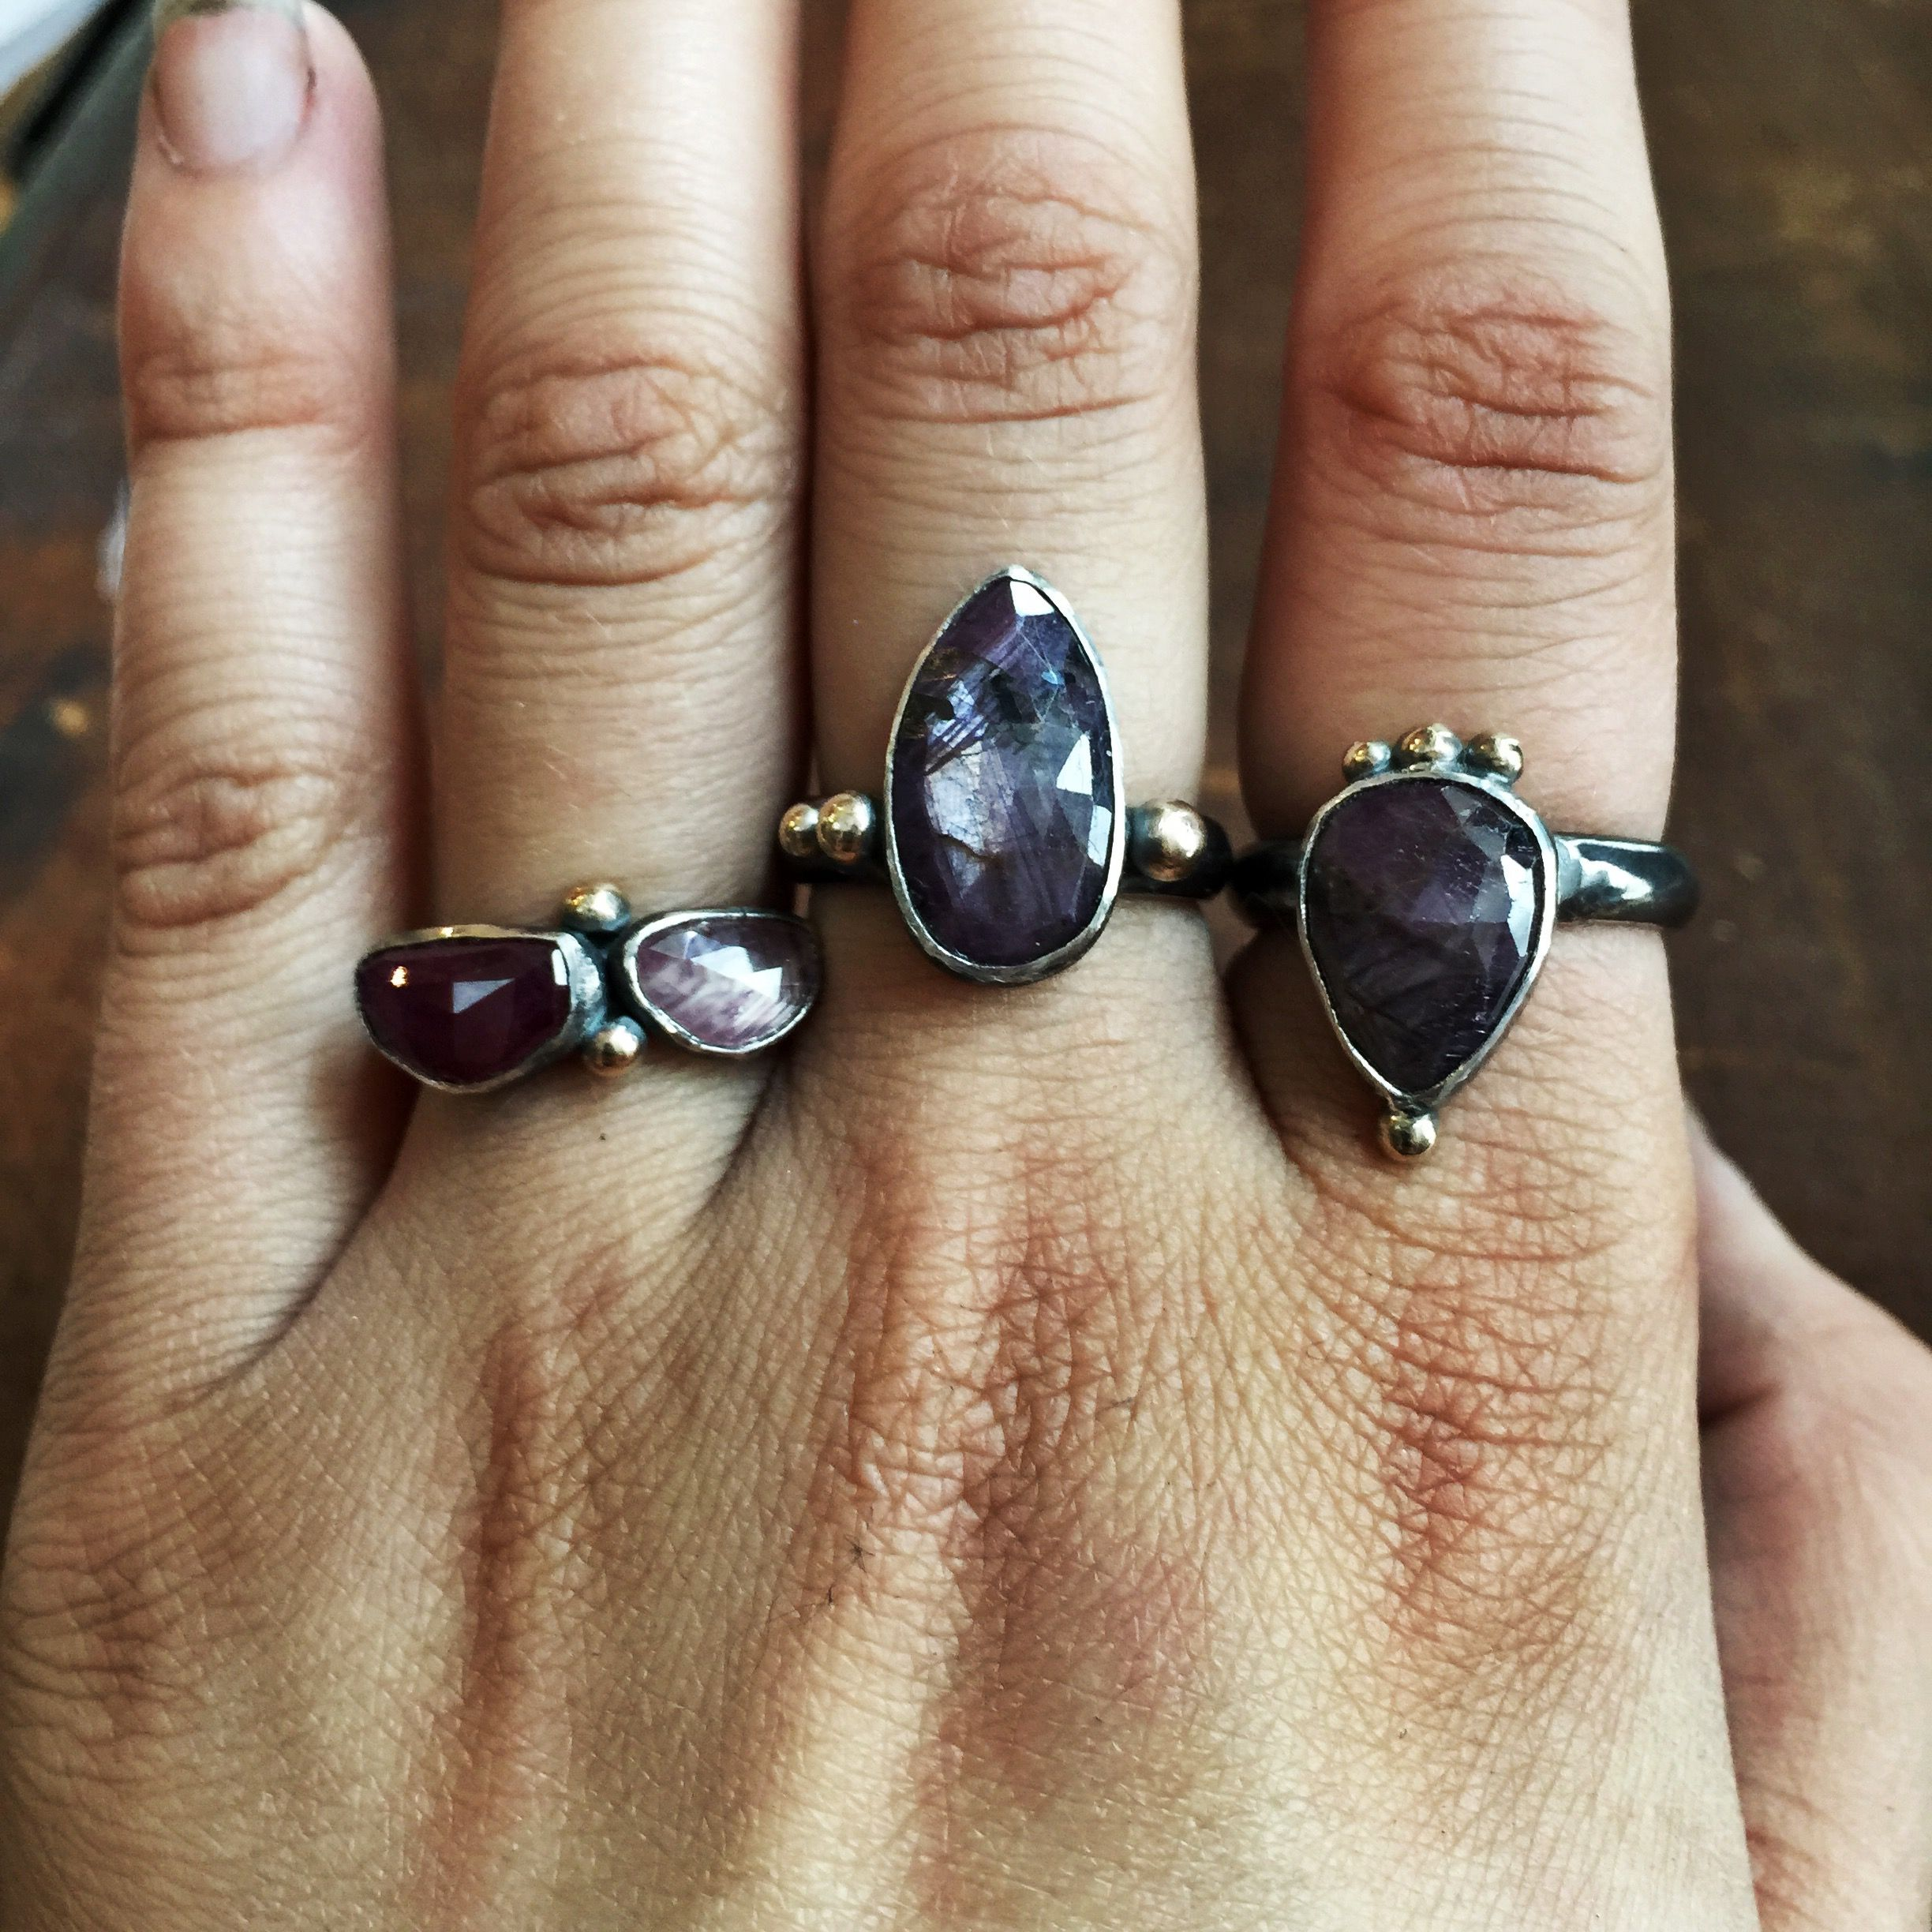 Gorgeous alternative engagement rings styles featuring sterling silver bands, sapphires & rubies, with 14kt gold accents.